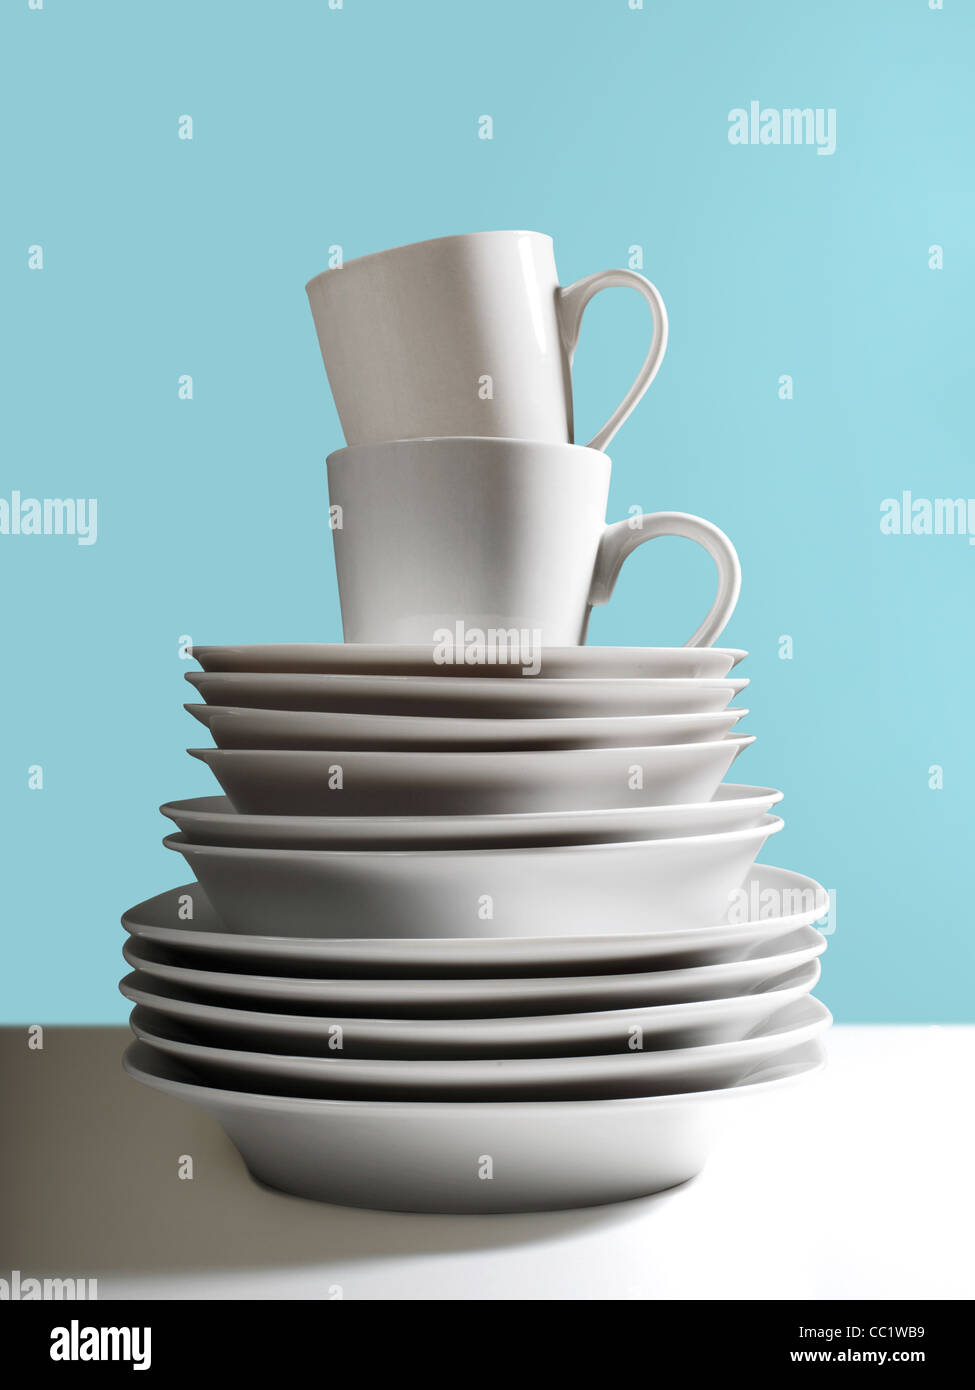 White Dishes Stacked - Stock Image